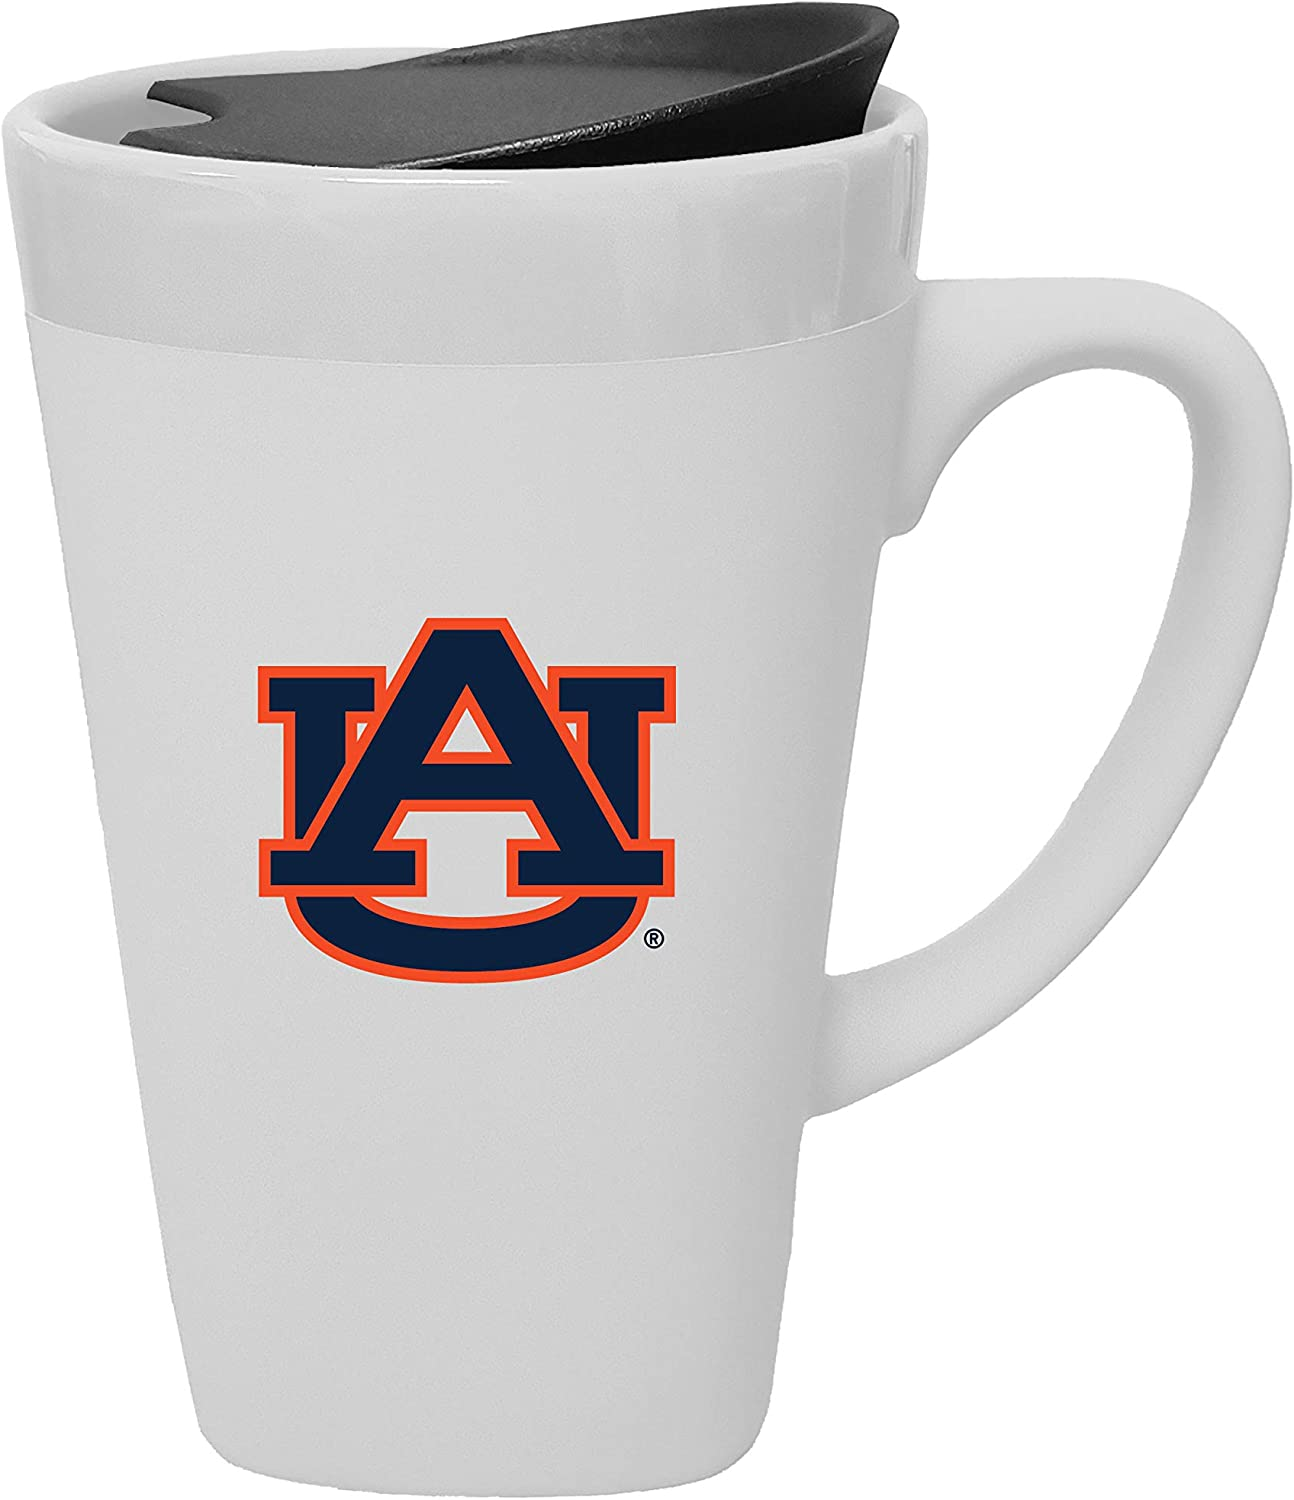 The OFFicial mail order Fanatic Group outlet Auburn University with Swivel Li Mug Porcelain